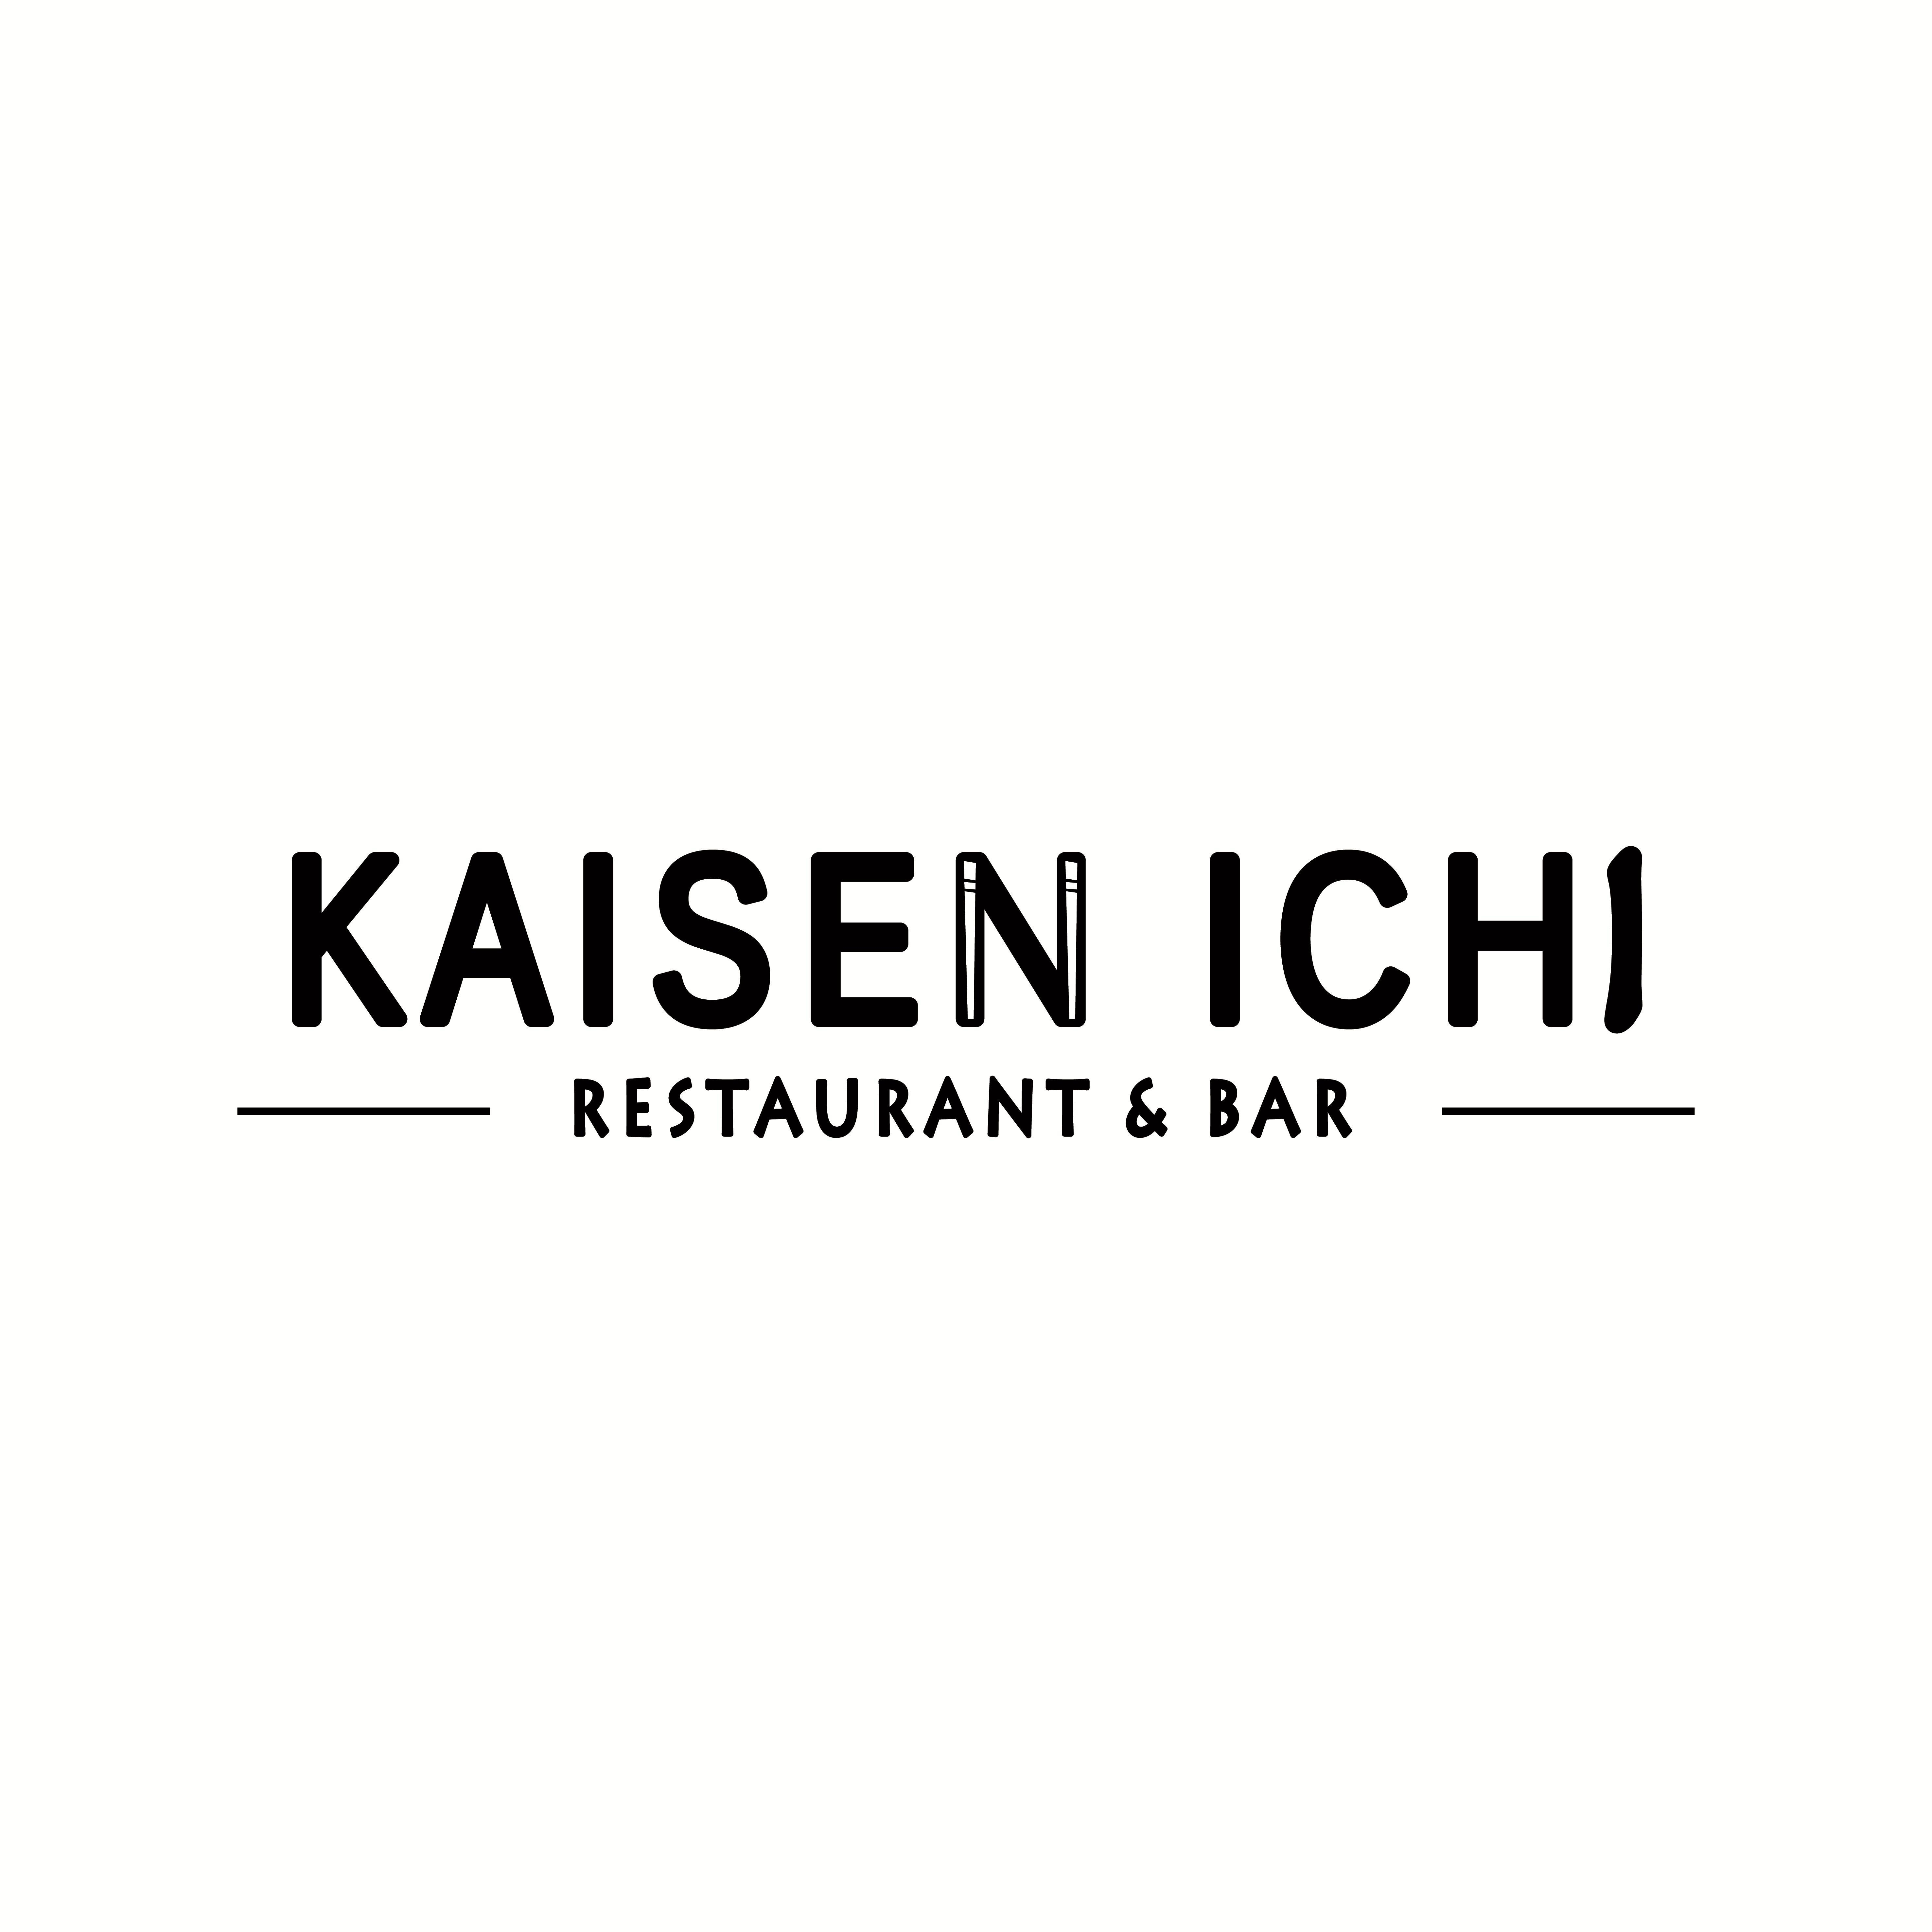 Kaisen Ichi Restaurant & Bar